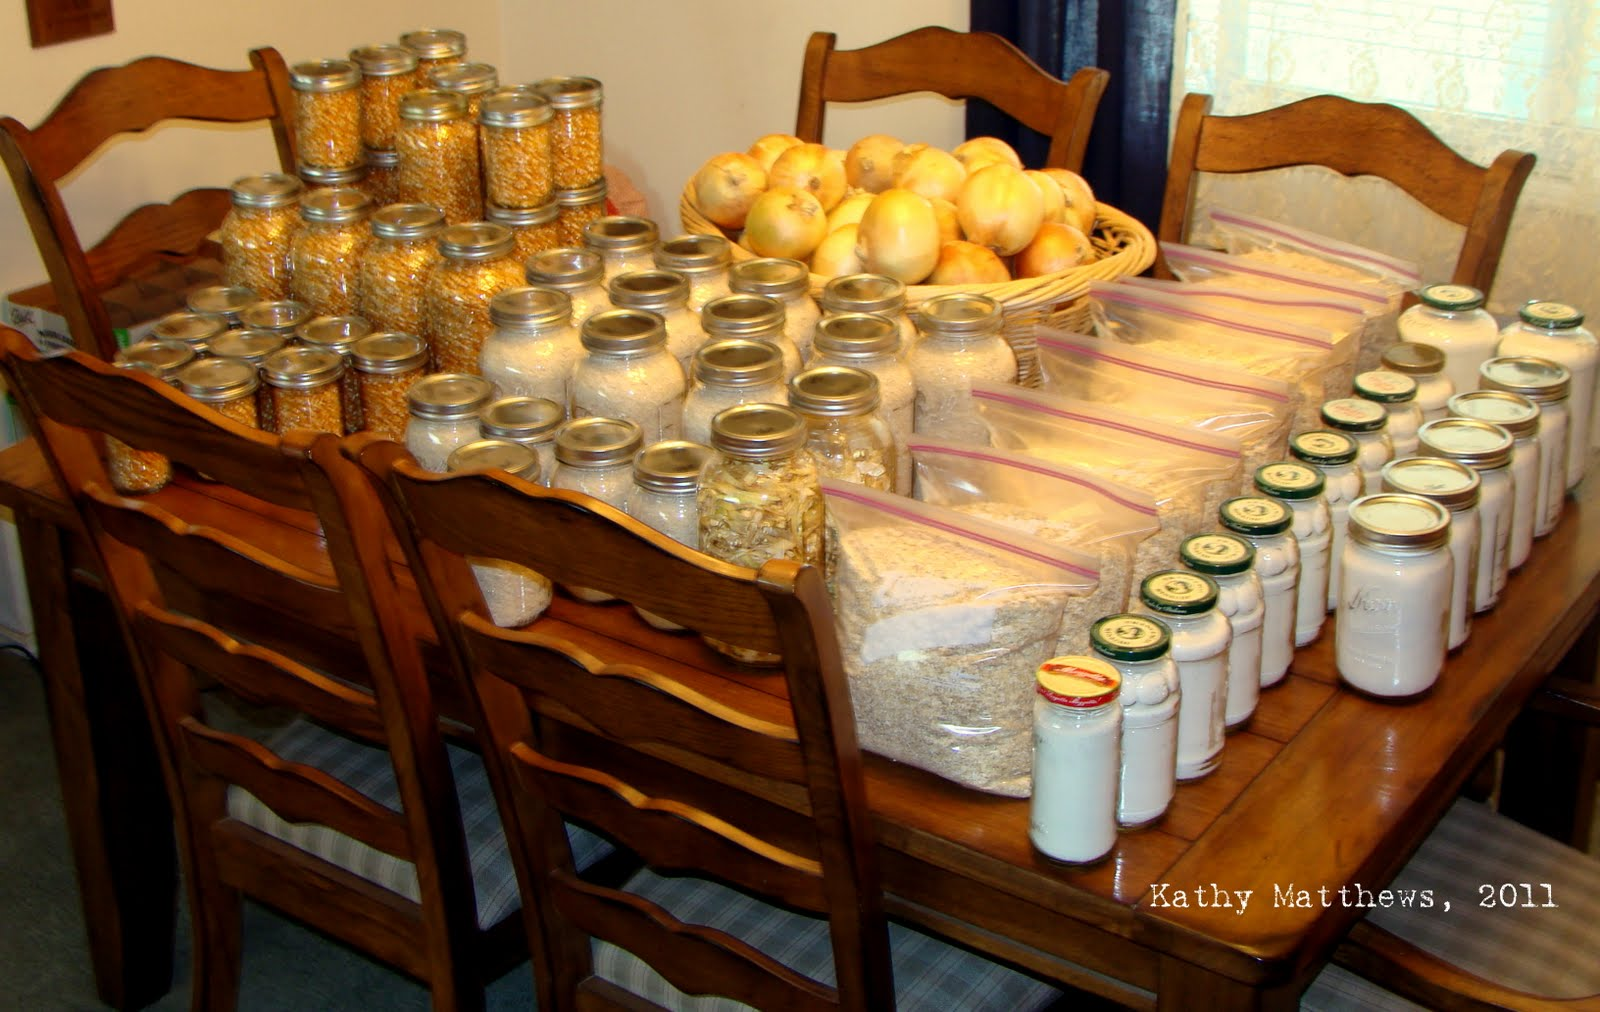 ... and Self-Reliant Living: Buying in Bulk and Food Storage Ideas